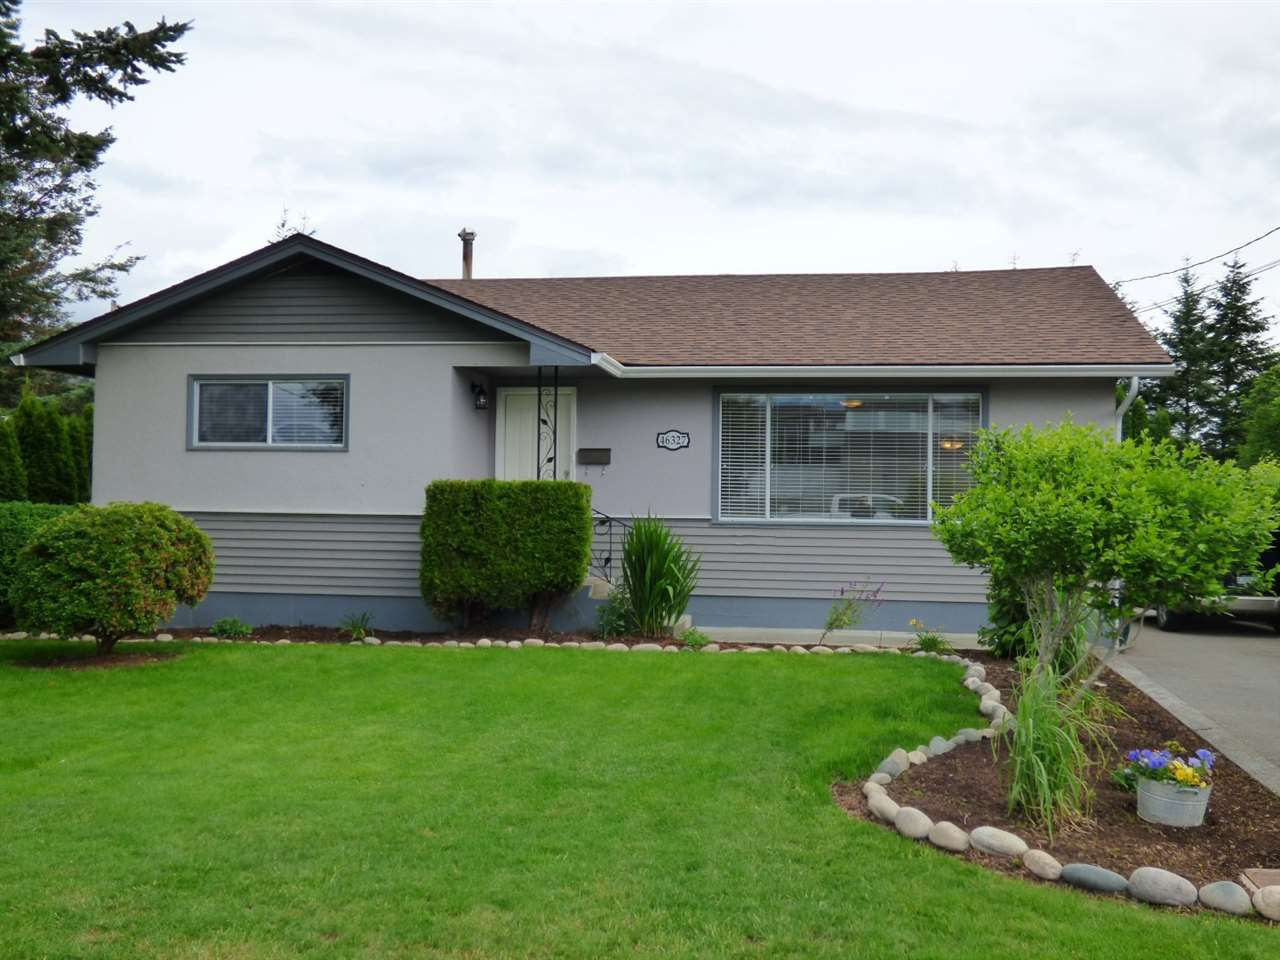 Main Photo: 46327 PORTAGE Avenue in Chilliwack: Chilliwack N Yale-Well House for sale : MLS®# R2179681